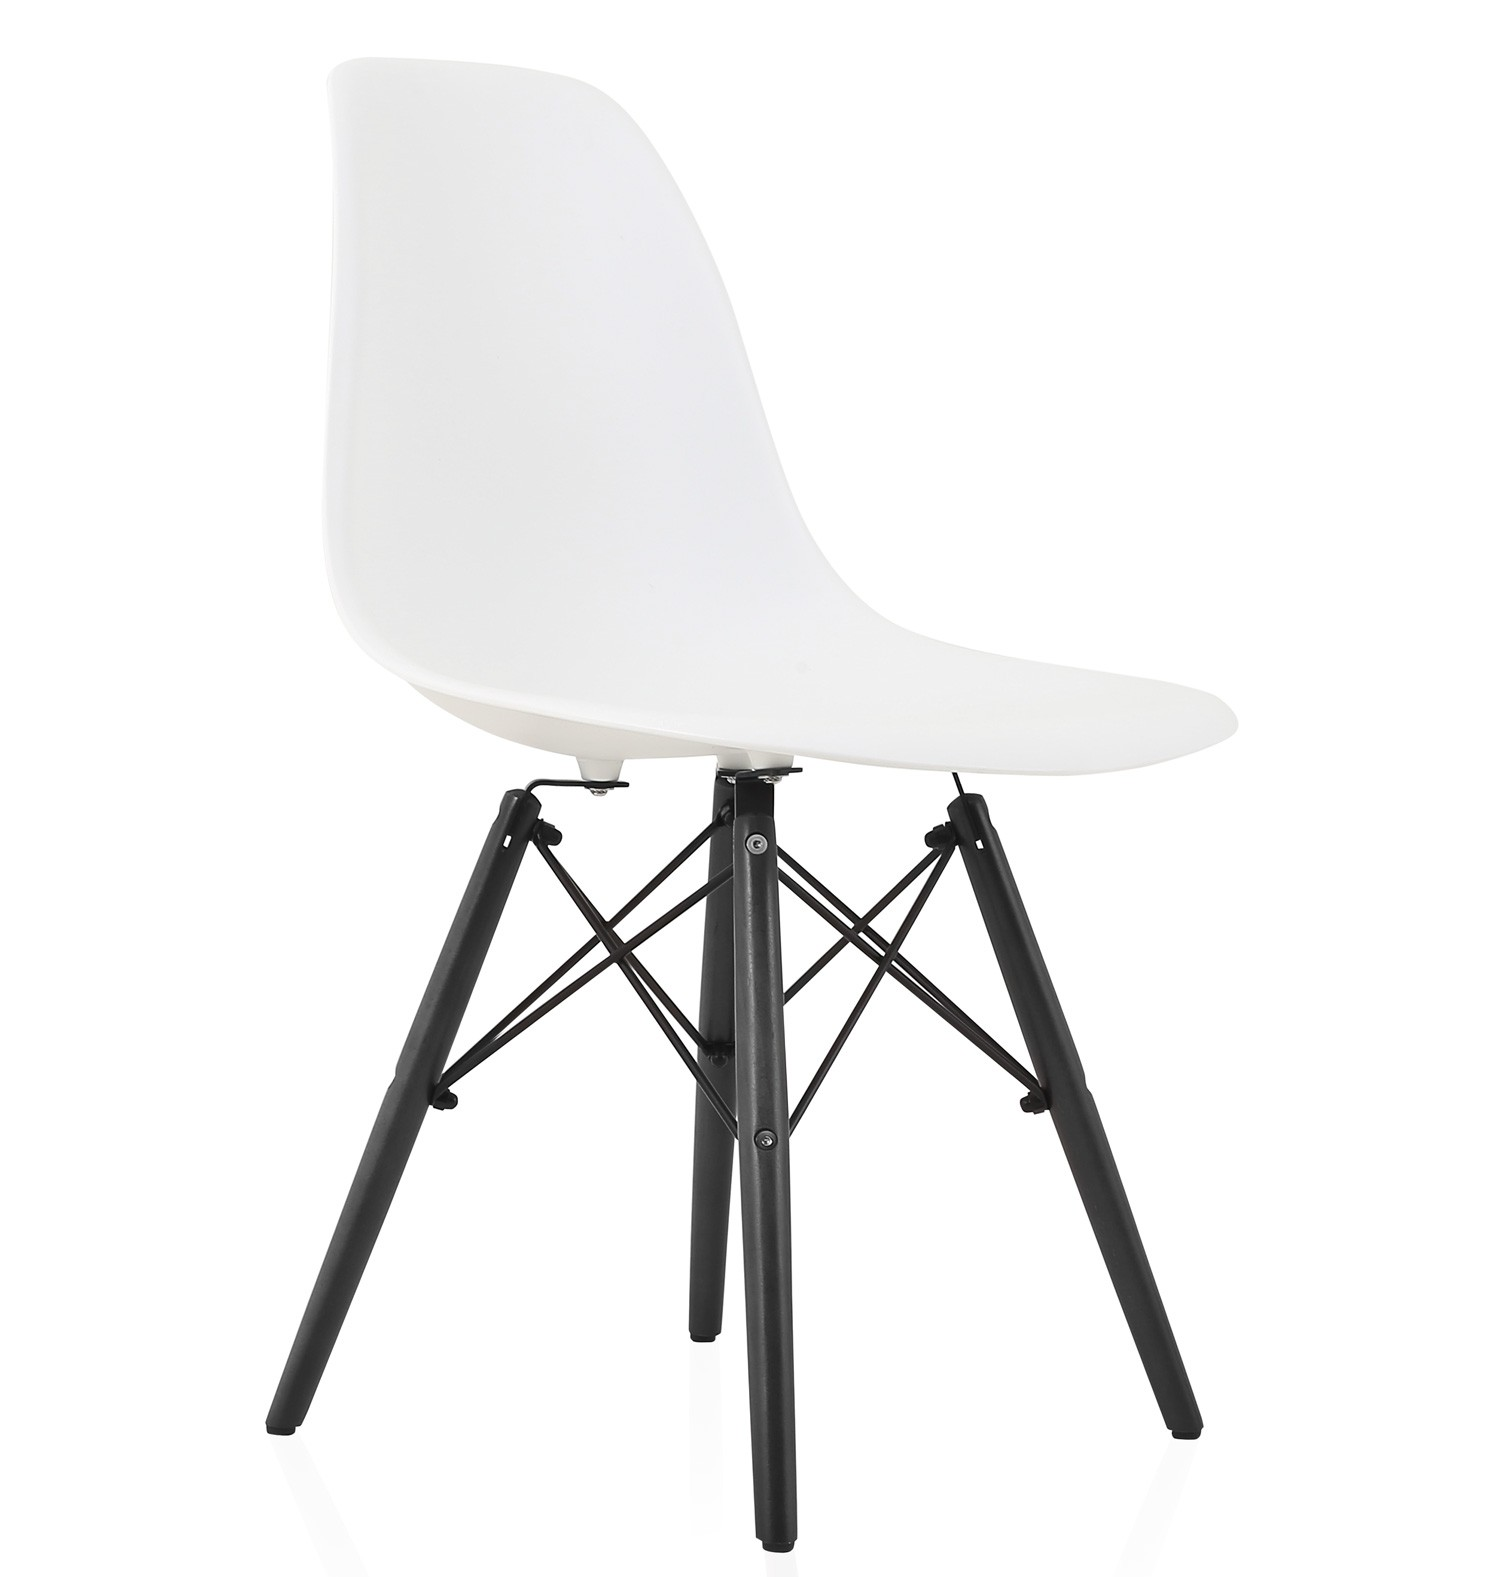 black plastic chair with wooden legs double seater camping eames style dsw molded dining side